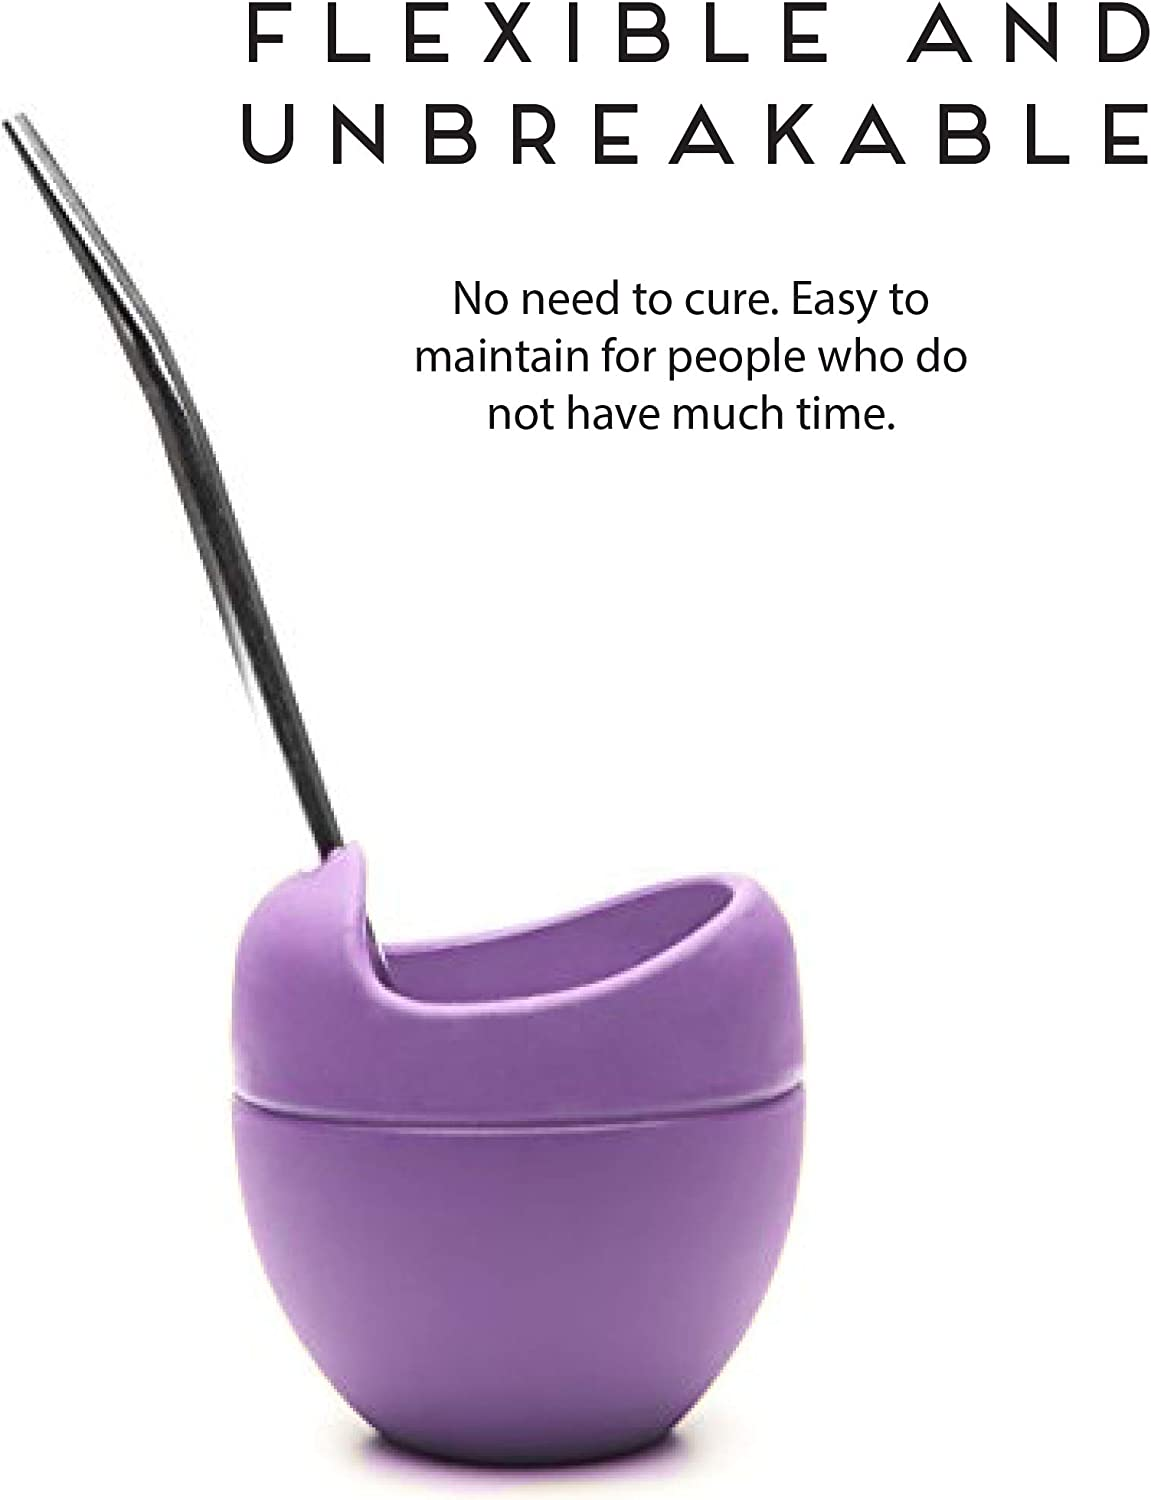 Yerba Mate straw mate cup - Unbreakable ideal for home with Bombilla made of Silicone work or travel Mate drinking BPA-Free PINK Balibetov Modern Yerba Mate Gourd